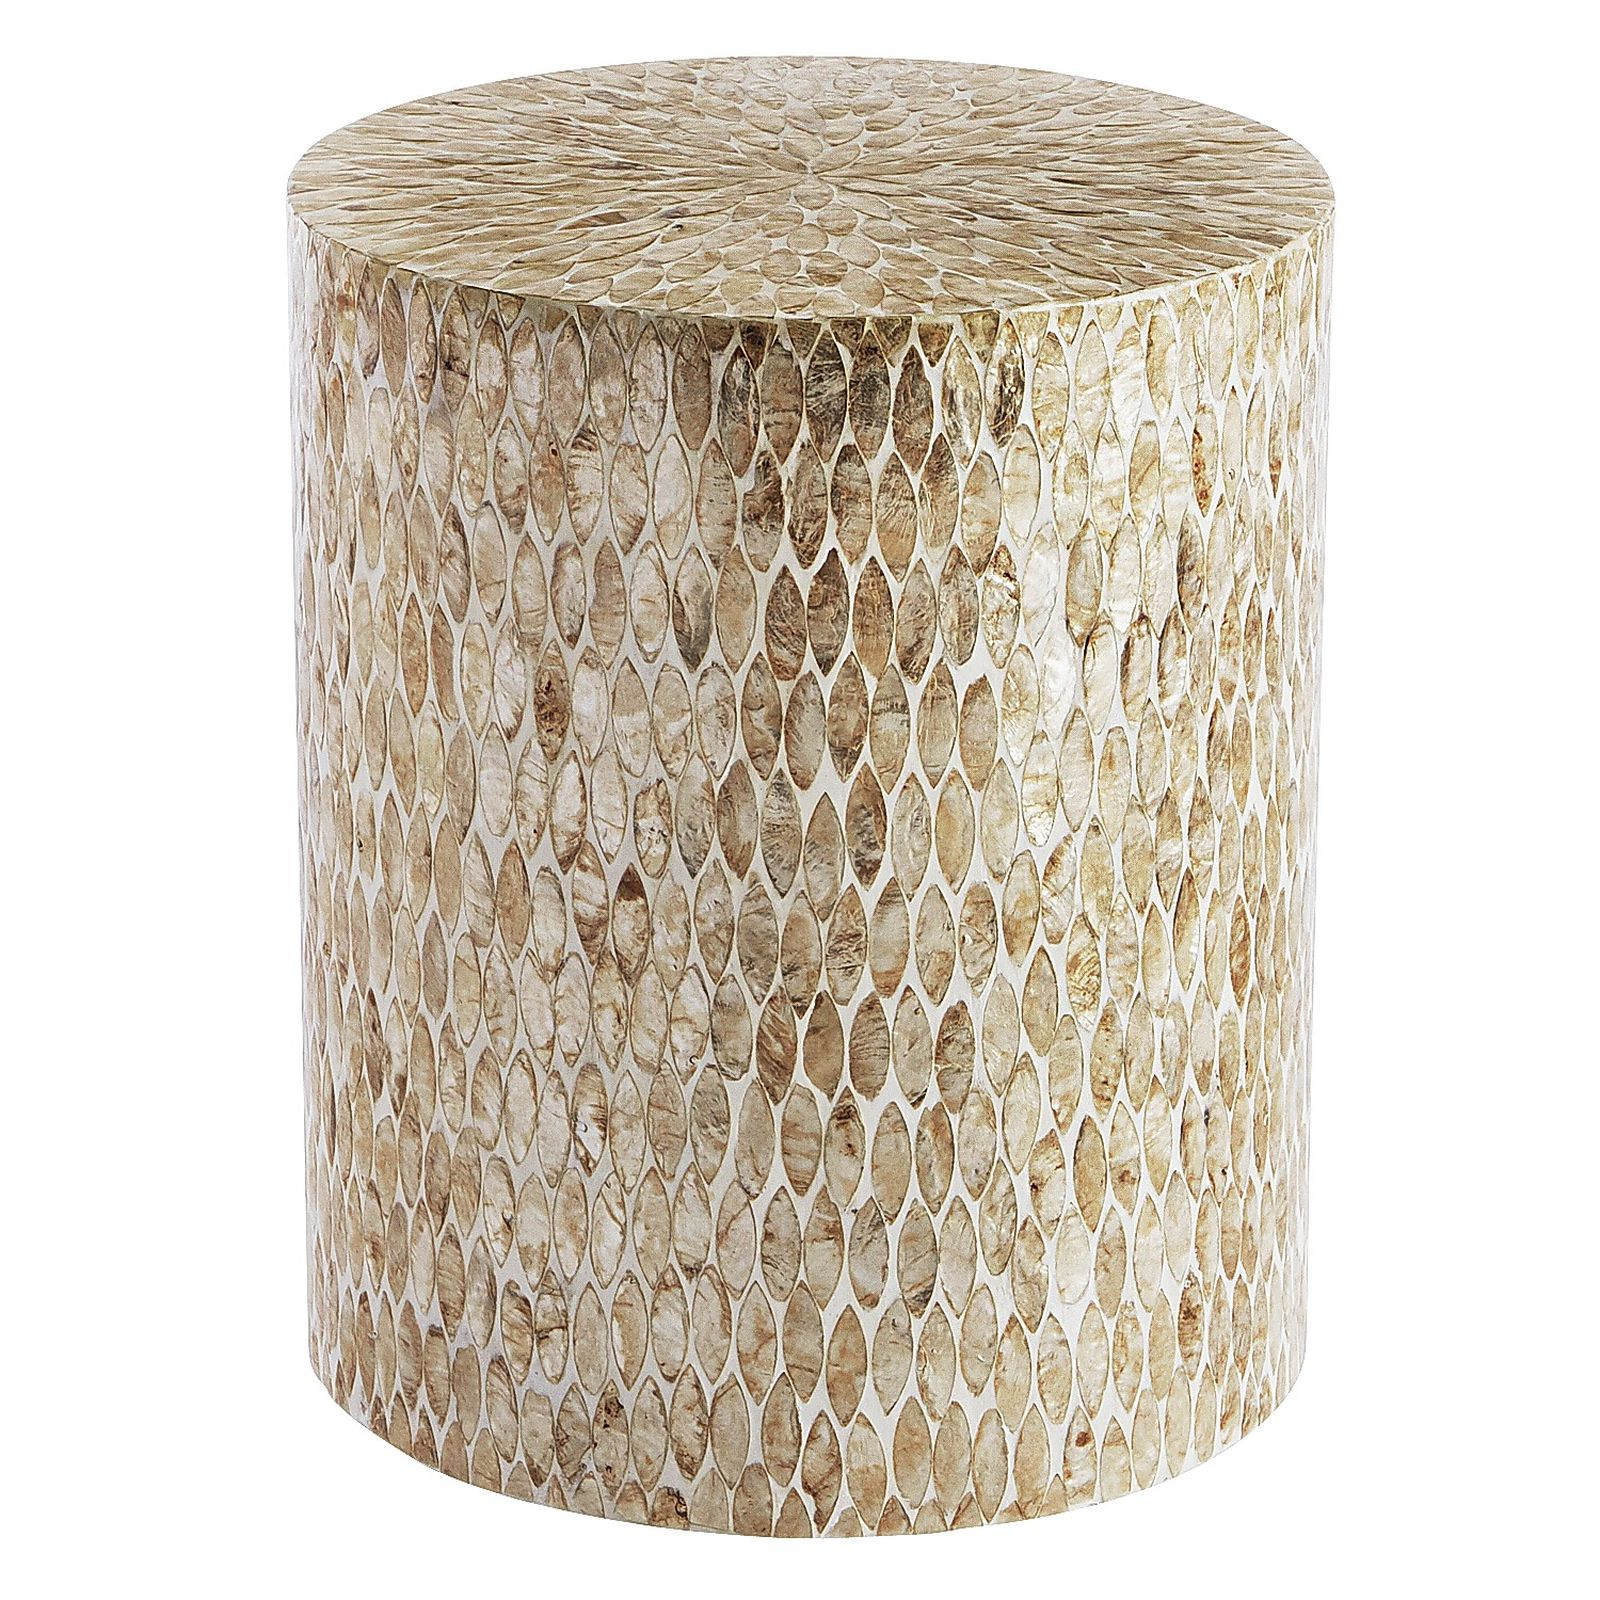 wine furniture probably perfect fun drum shaped end table gallery occasional tables our guest capizleafsidetable outdoor patio accent pine and chairs wooden bedside cabinets argos